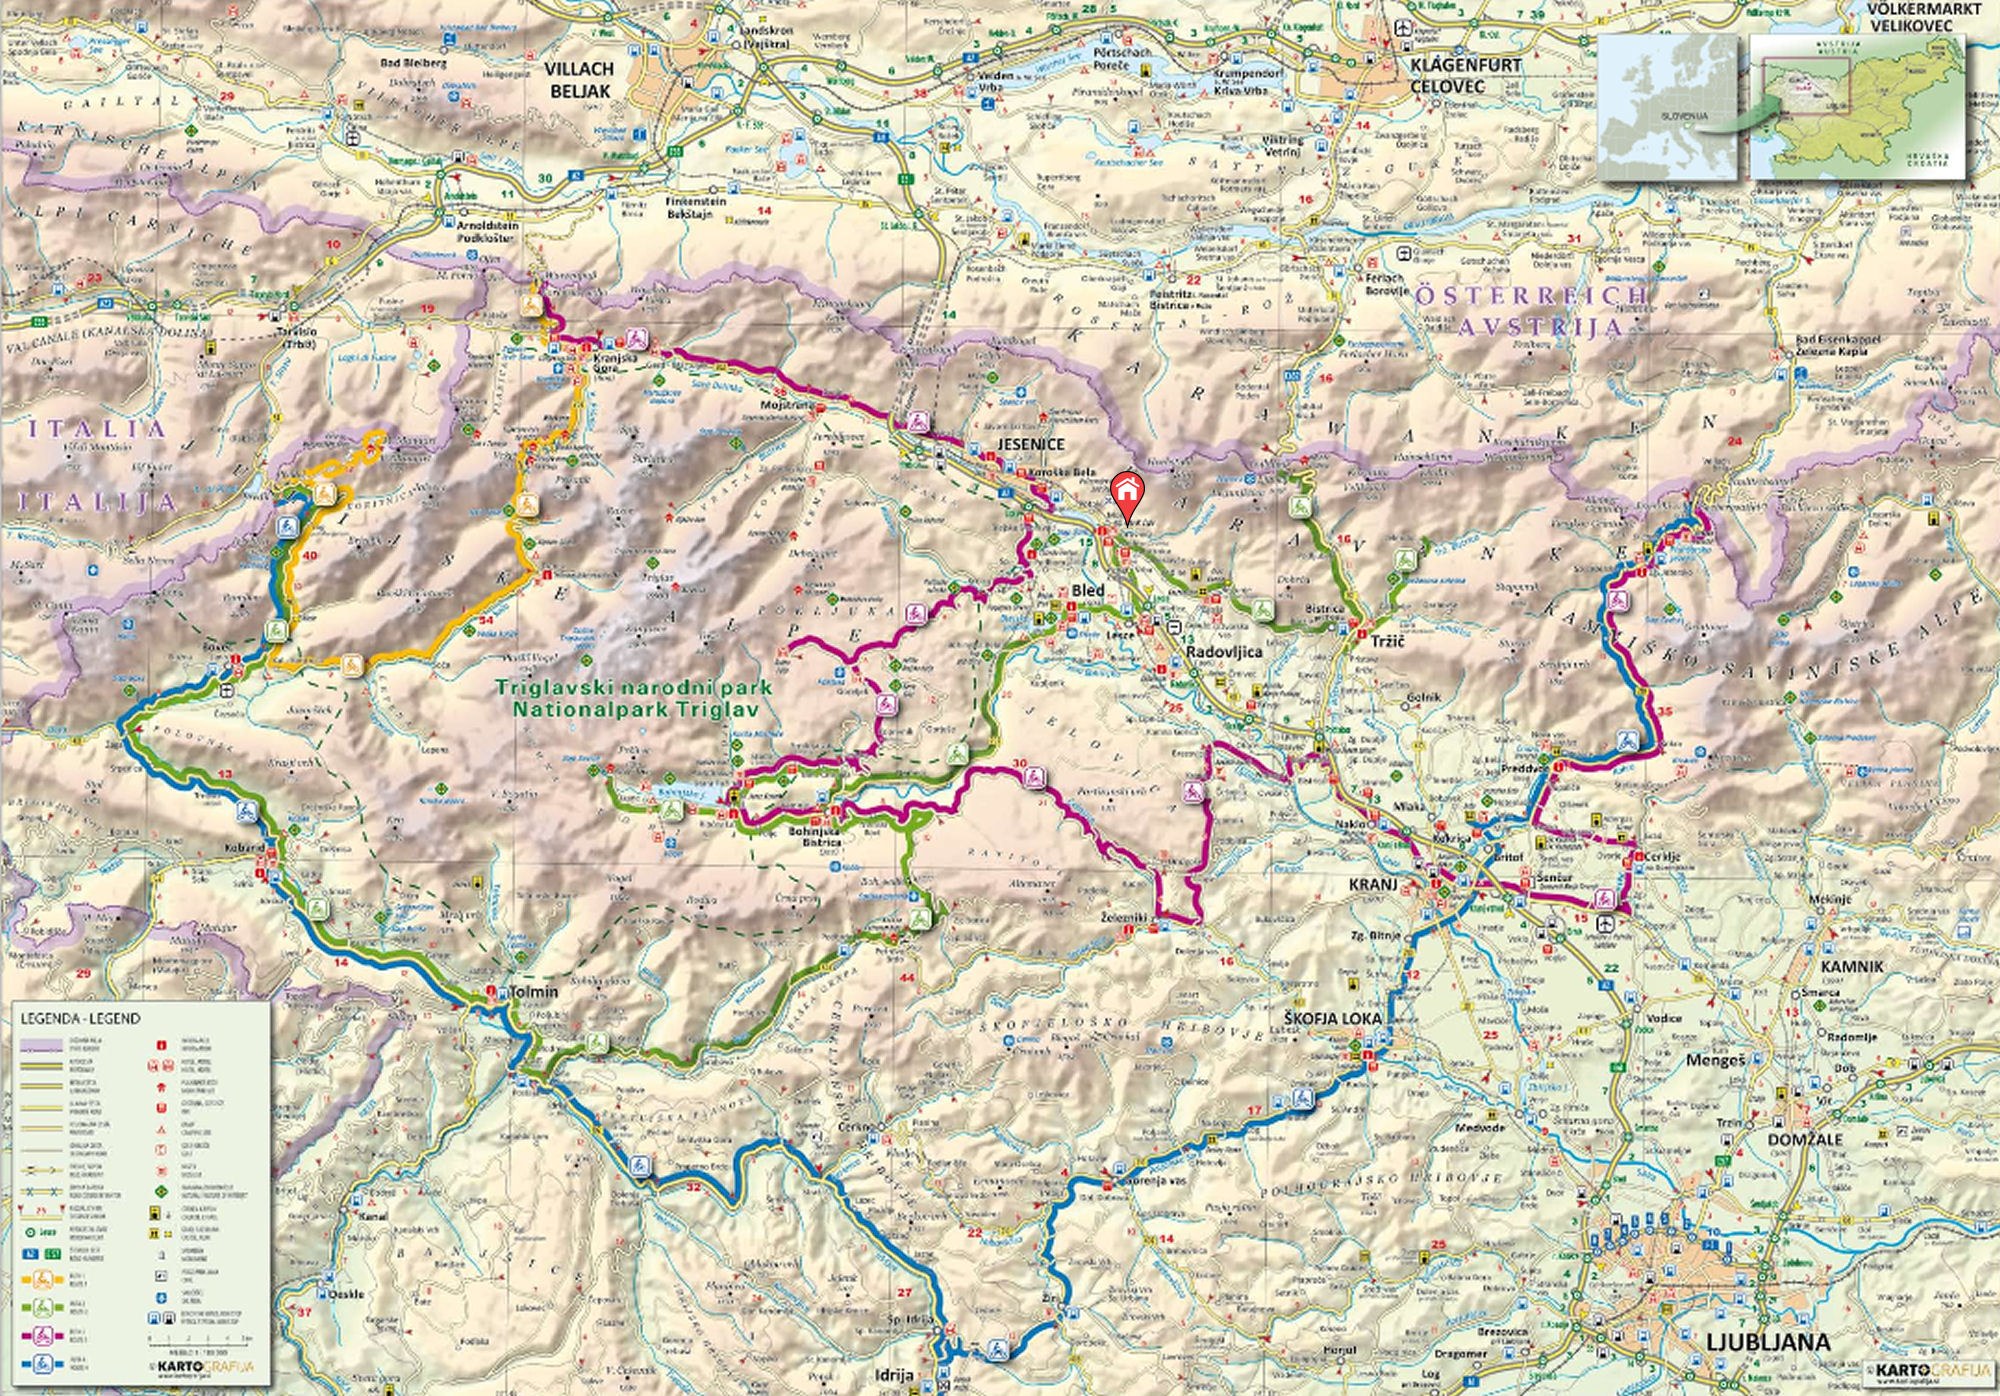 Motorcycling routes in Gorenjska, Slovenia on the map